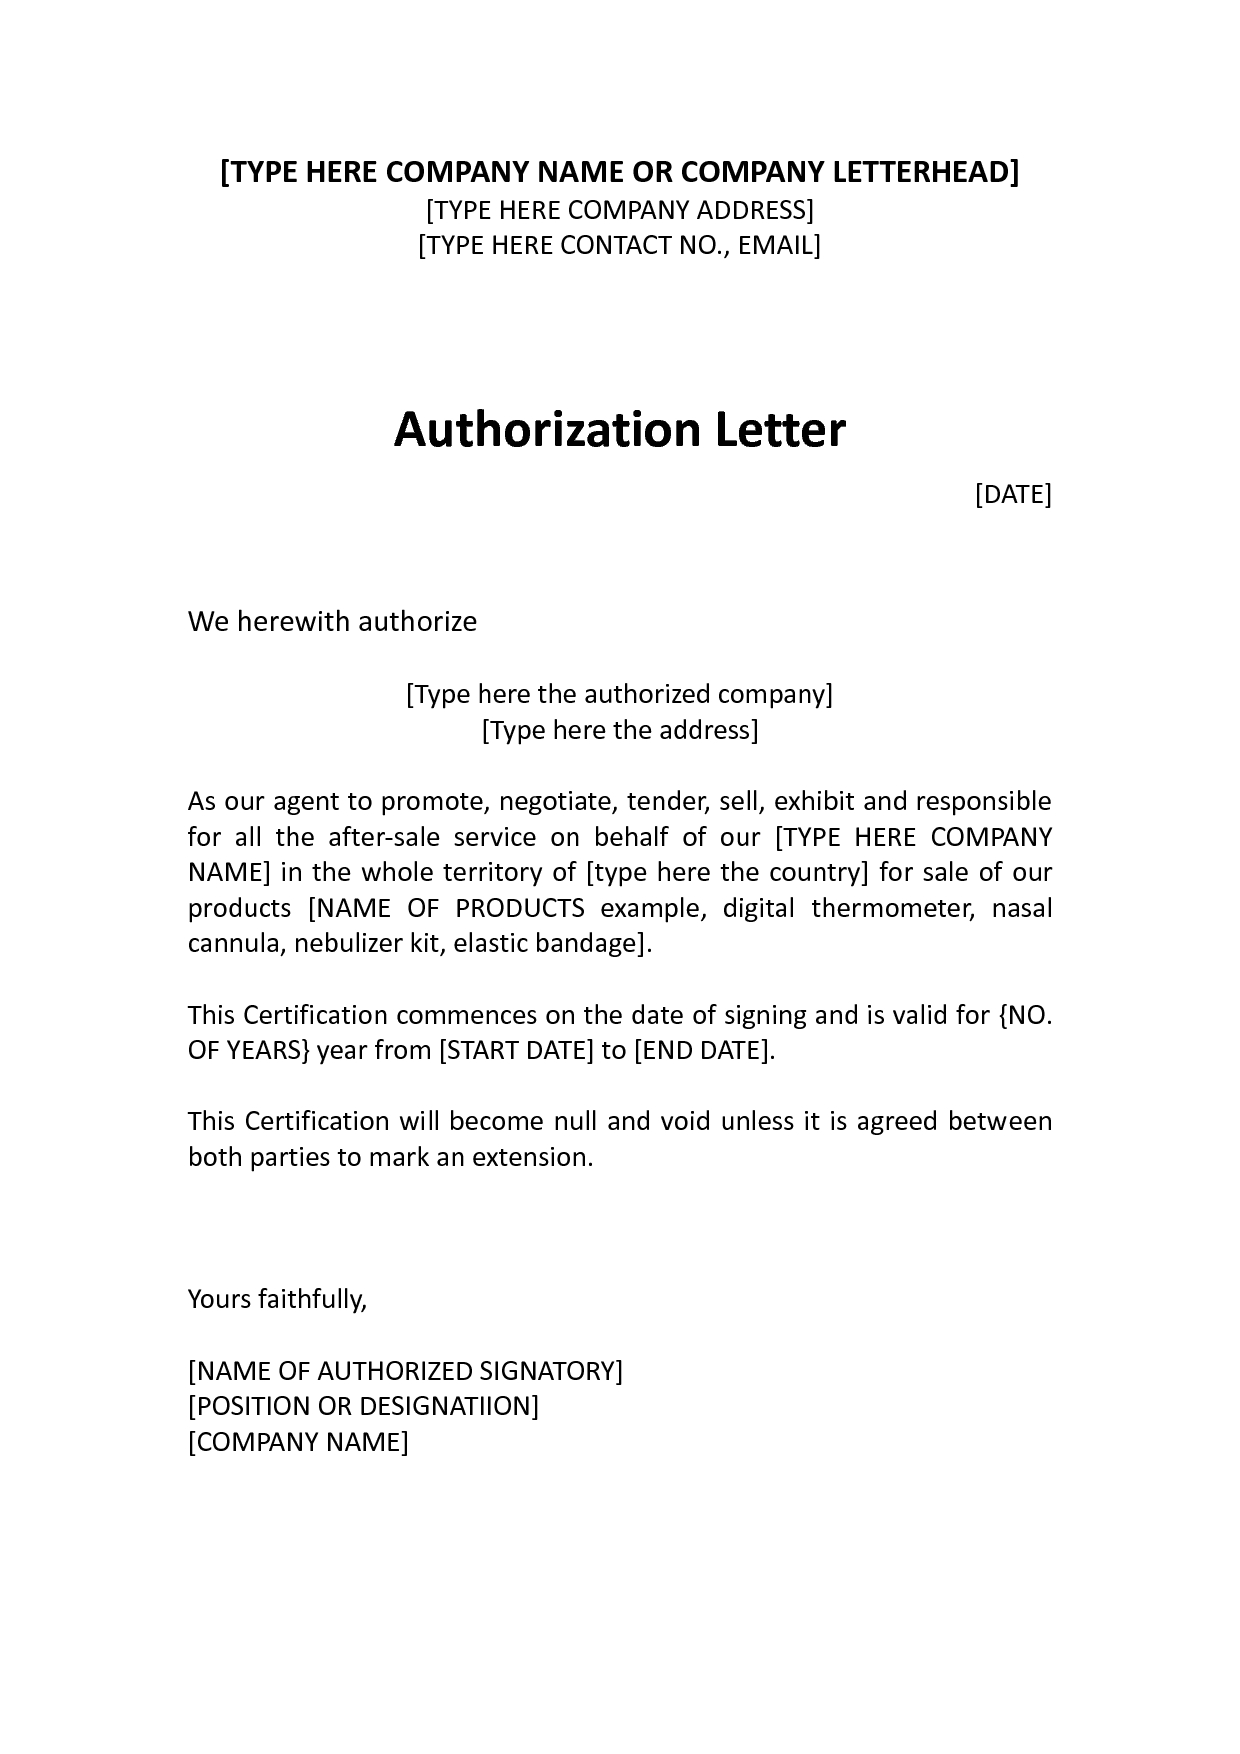 Sales Letter Template Promoting A Service Collection Letter